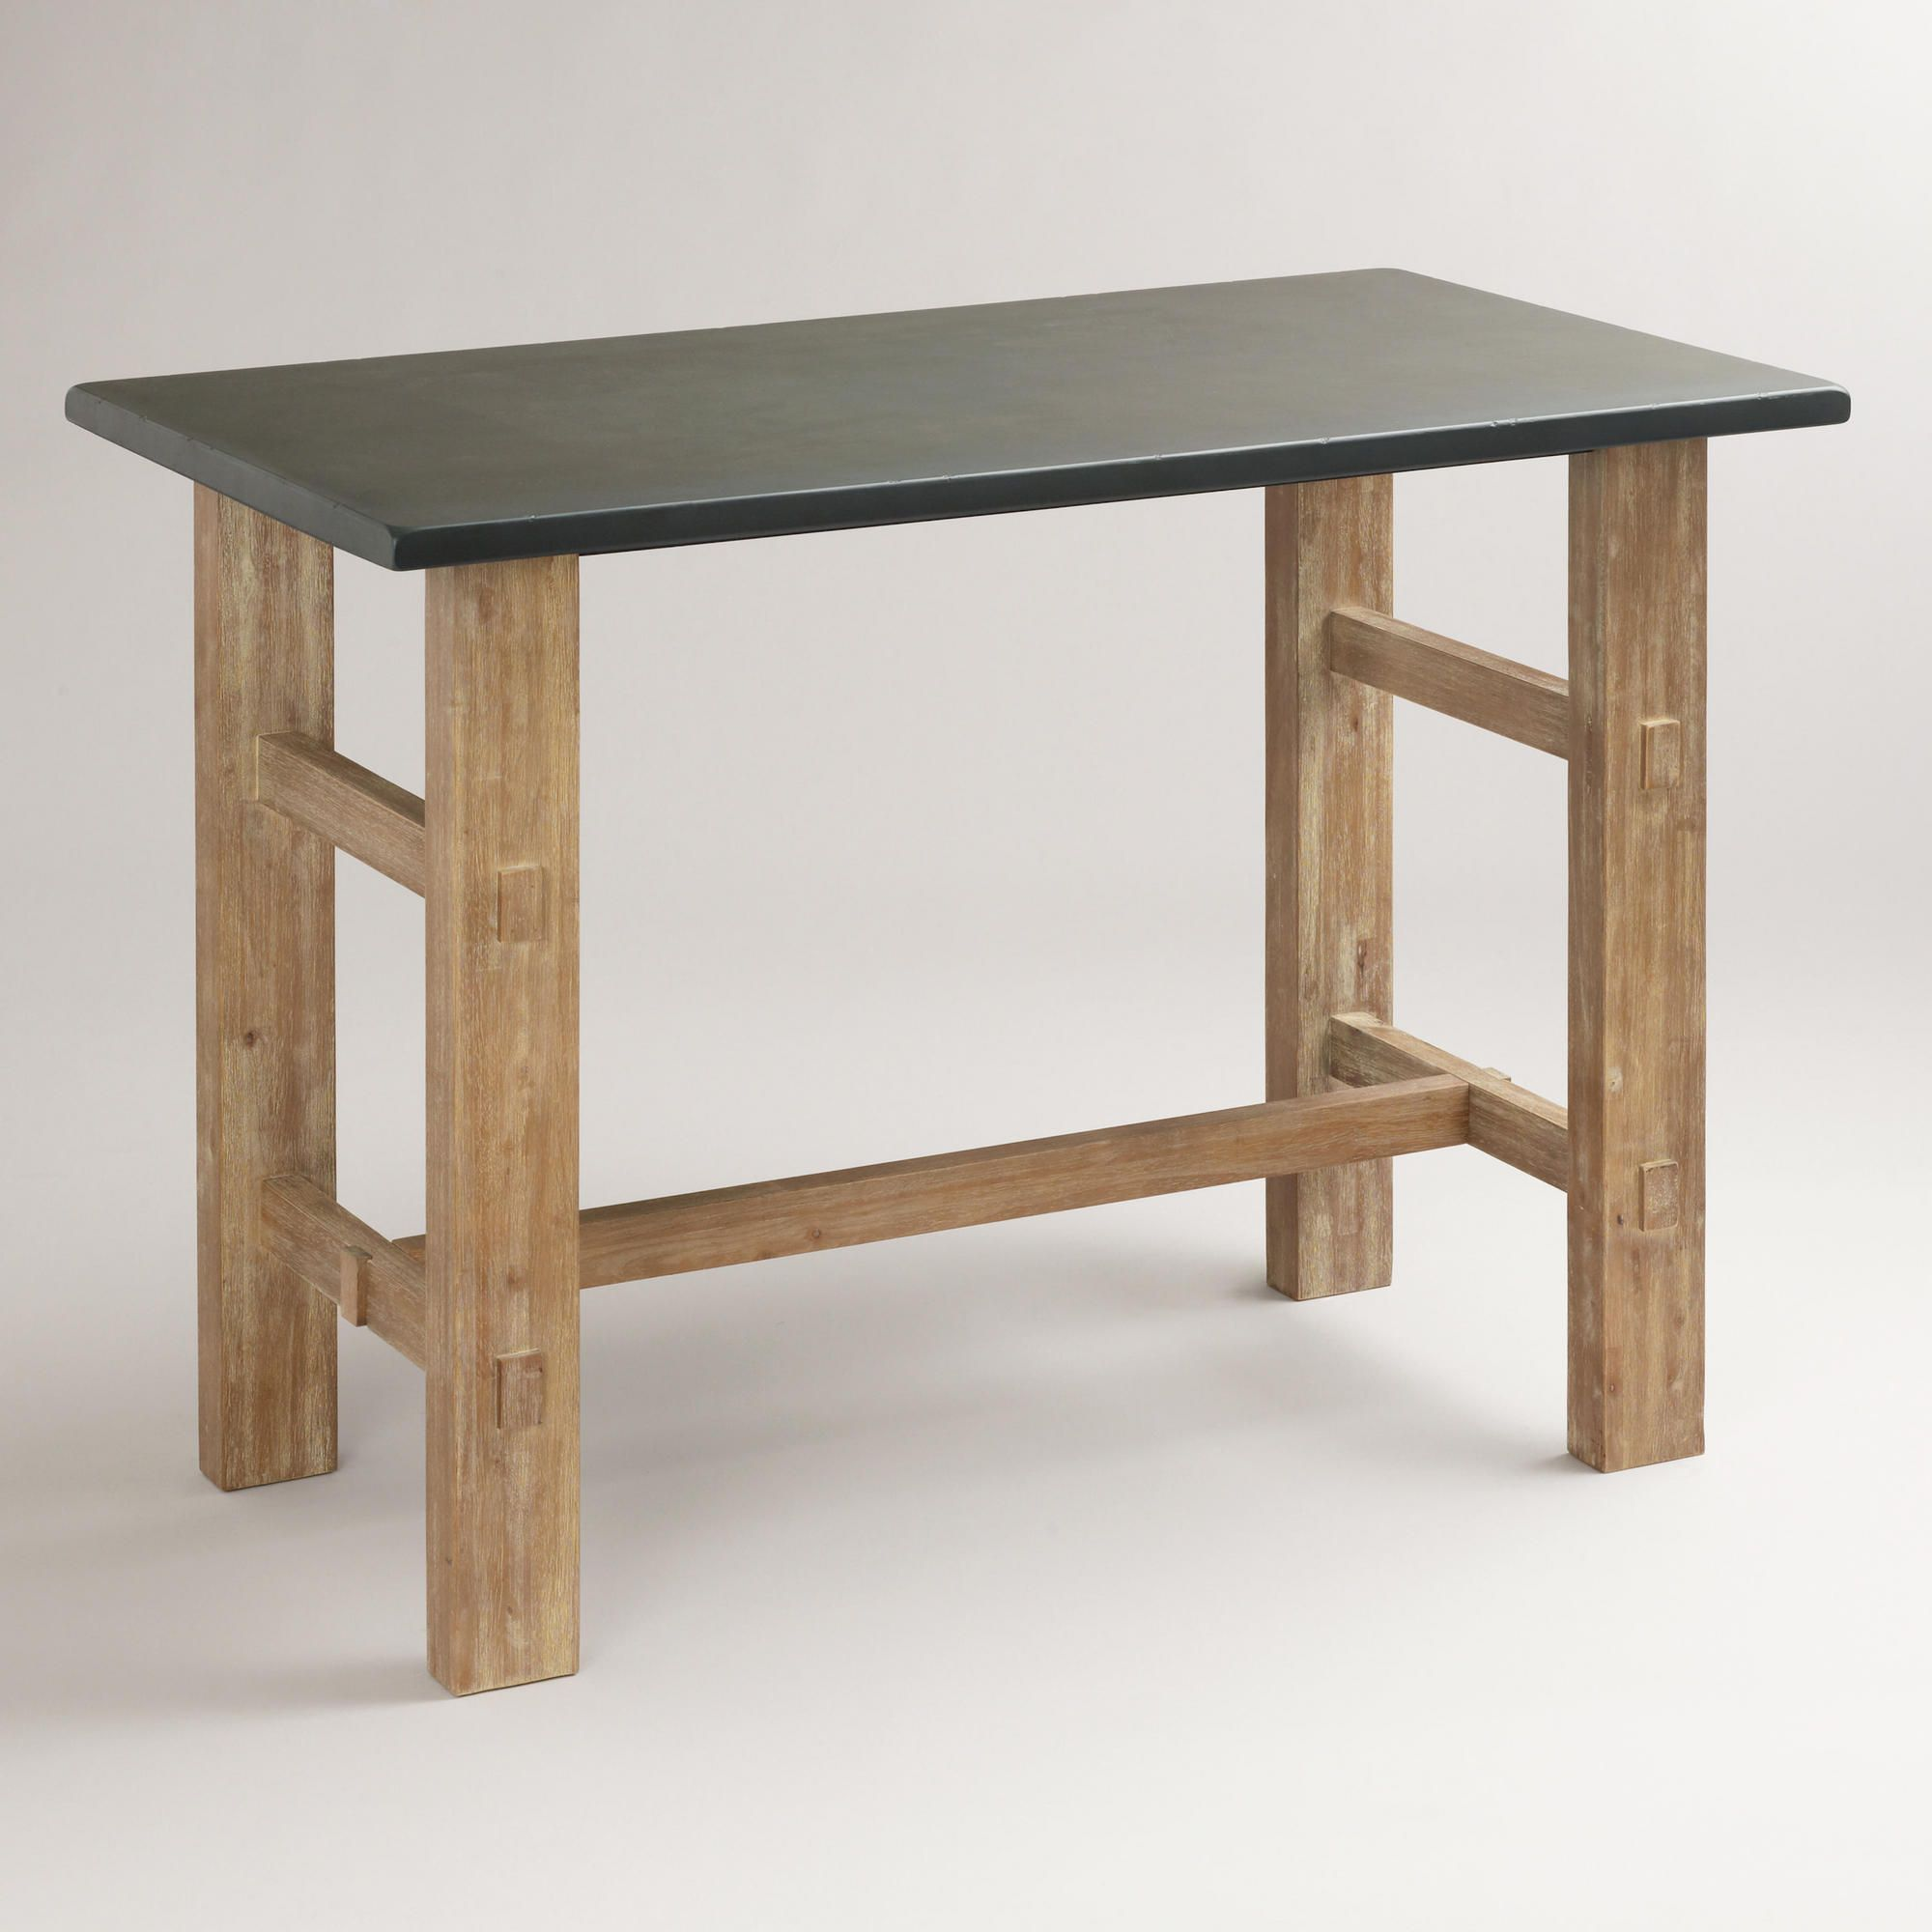 Captivating Brooklyn Work Table, World Market. 47.25W X 27D X 35.75H. $349 With A  Soapstone Top.